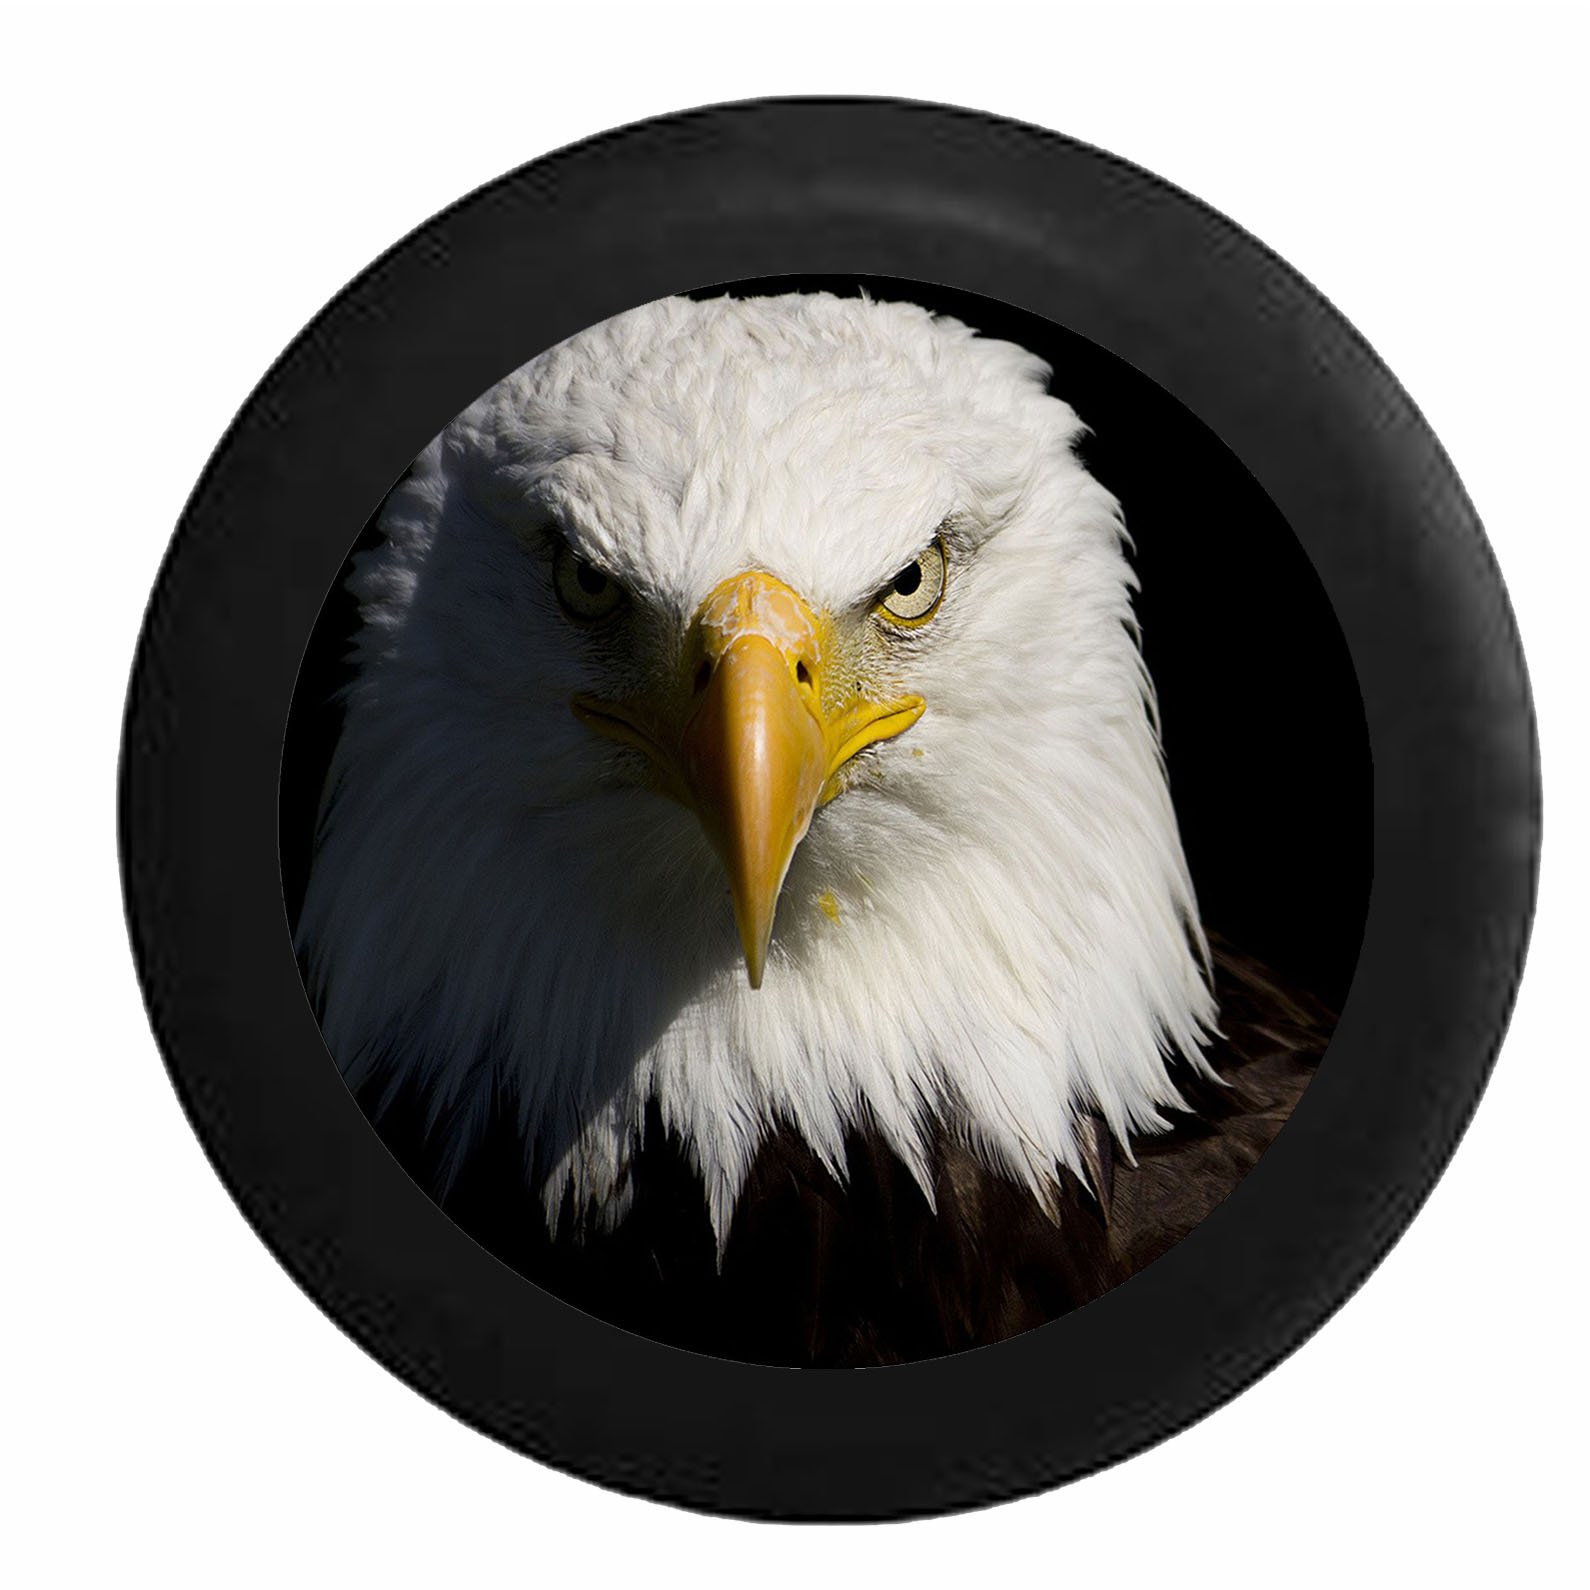 Full Color Staring American Bald Eagle Closeup Spare Tire Cover fits SUV Camper RV Accessories Black 26-27.5 in by Pike Outdoors